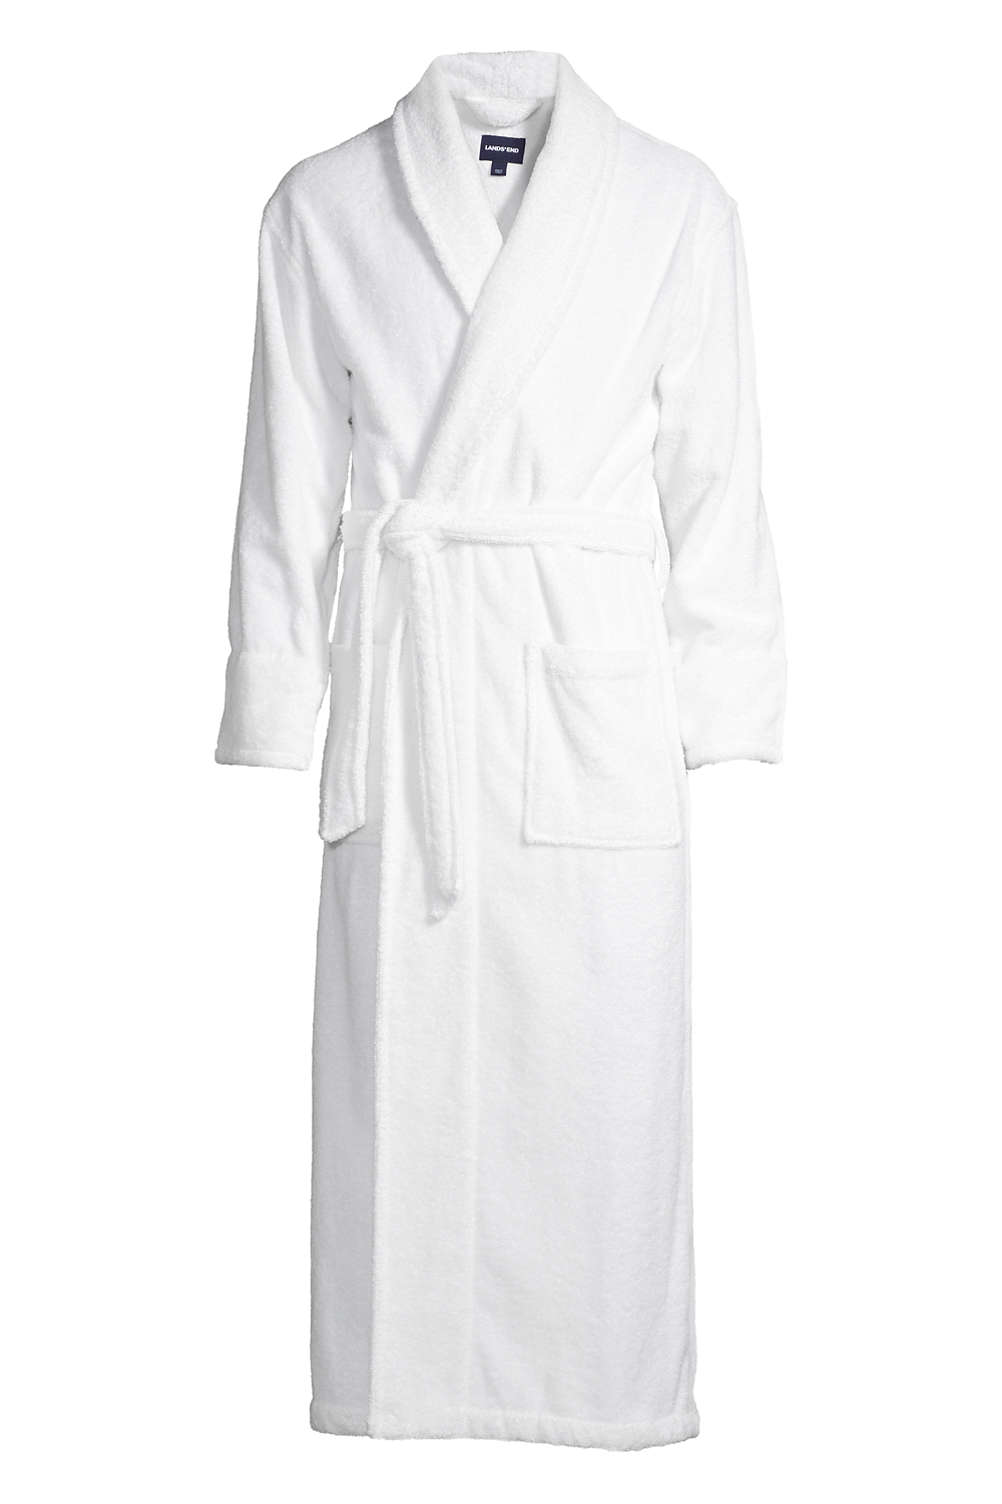 3bf48b0798 Men s Full Length Turkish Terry Robe from Lands  End